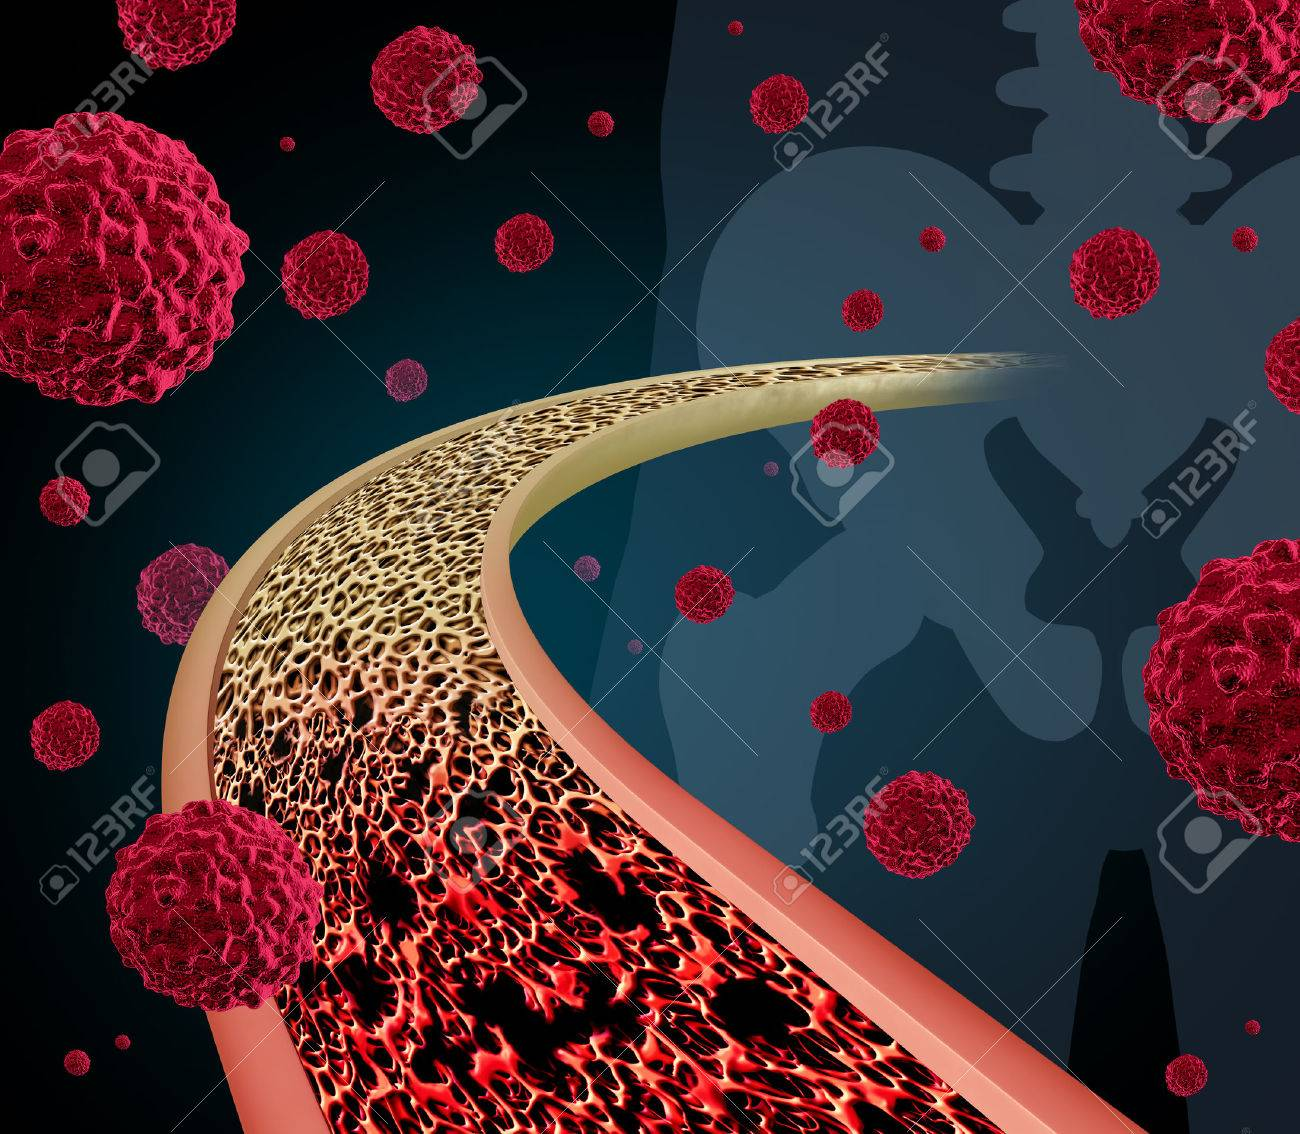 Bone Cancer Concept Illustration As A Close Up Diagram Of The Inside ...